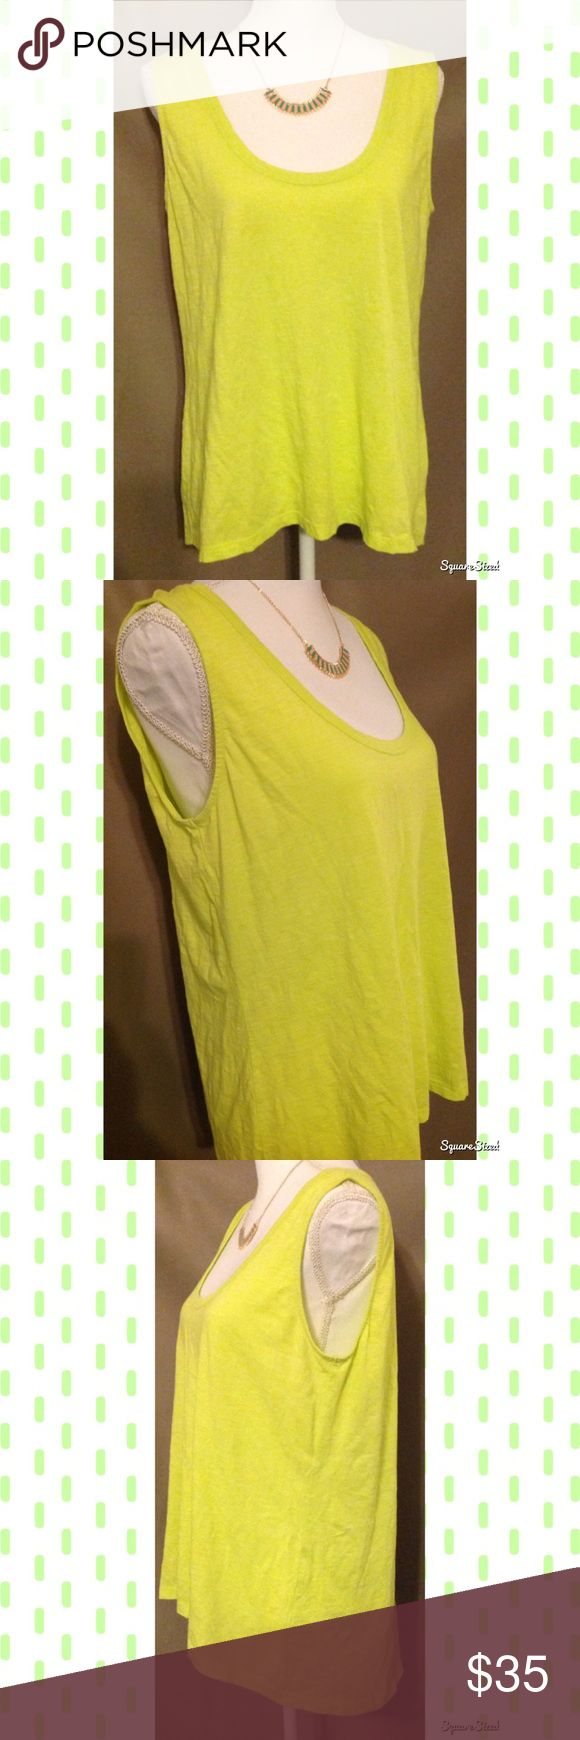 Yellow Lilla P Tank Top This bright yellow tank top features a cute keyhole design on the back and a hi-low design which completes a chic look. Super cute with a pair of black skinny jeans! Size: XL; 100% Cotton. Tops Tank Tops